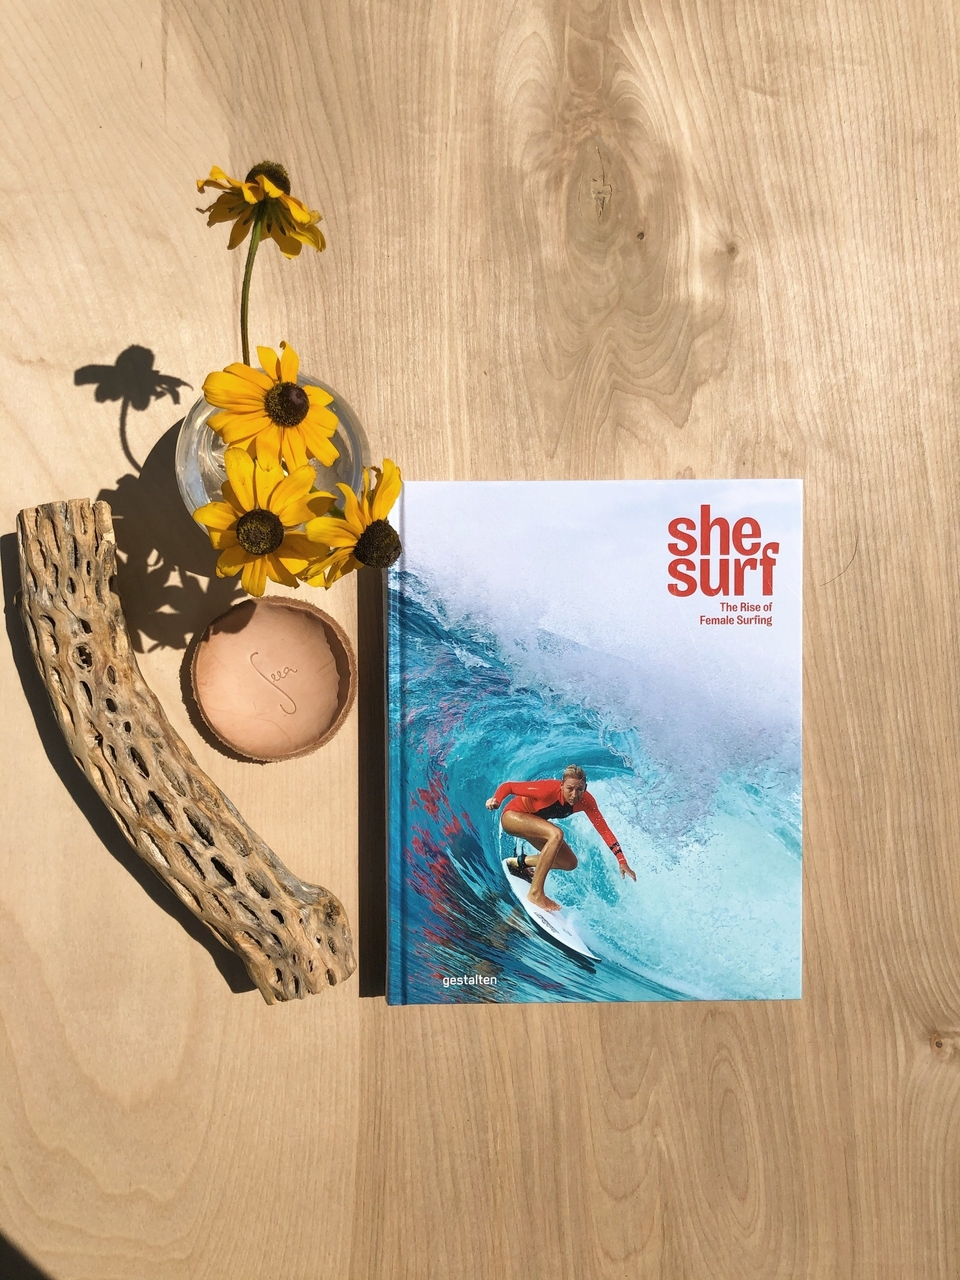 Lauren's book, She Surf: The Rise of Female Surfing, is an incredible read and we recommend it to everyone.